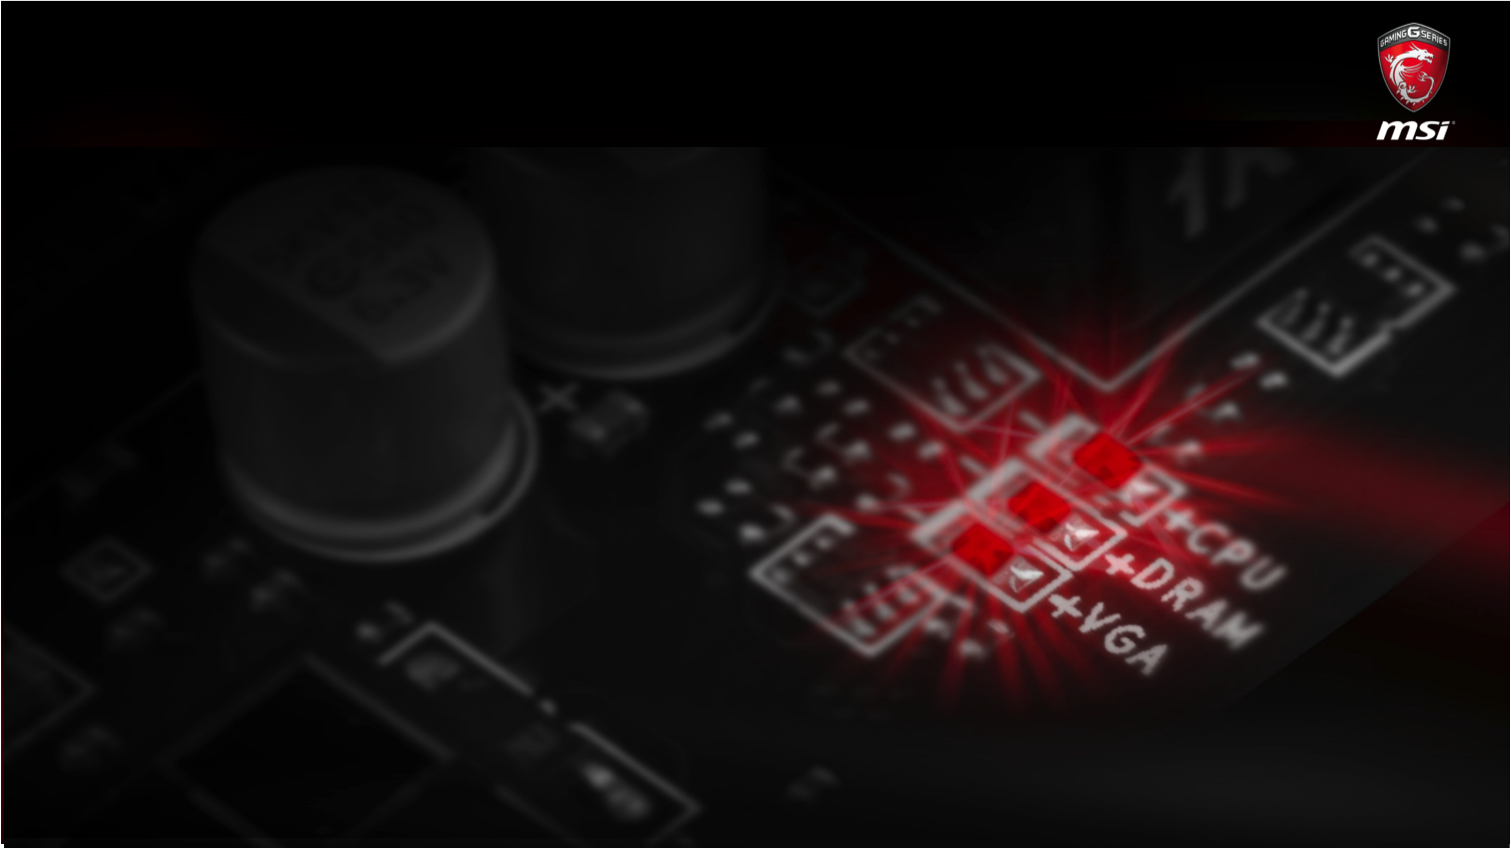 Every Hero Needs A Weapon In The Battlefield So Do You Light Laser Led Gt Circuits Traffic Lights For Games With More Details Of Msi Z170 Gaming Motherboard